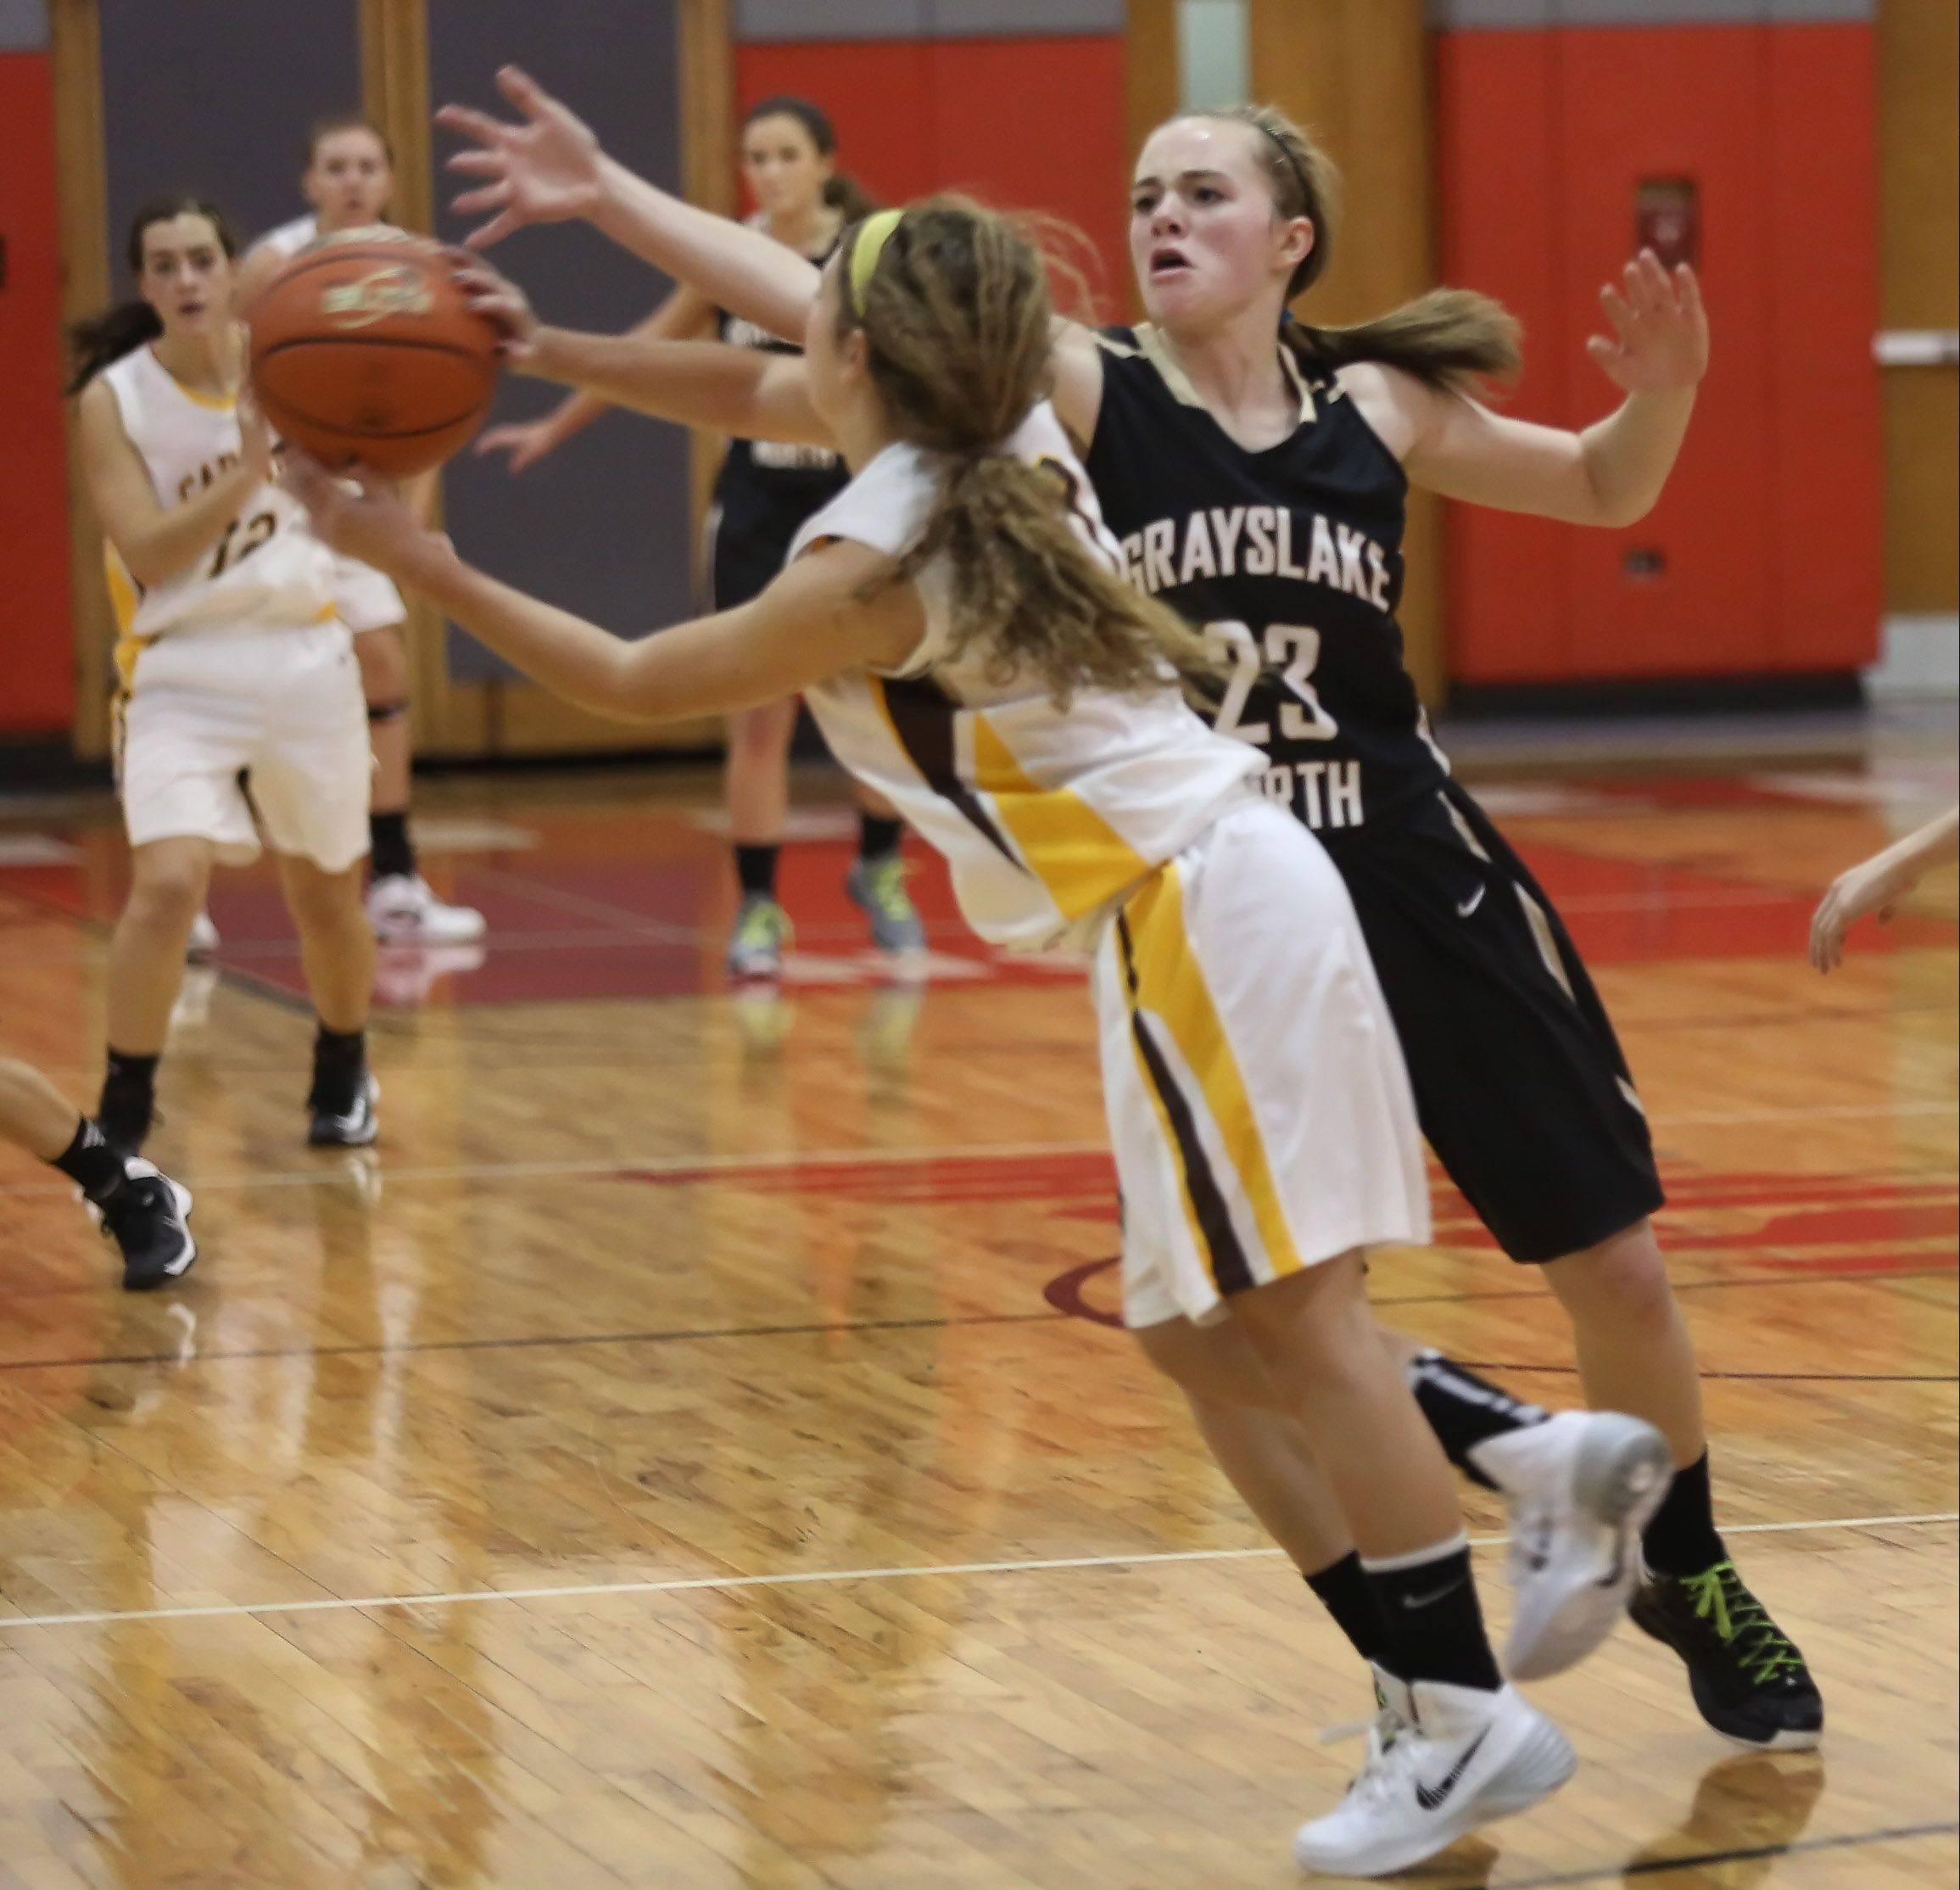 Grayslake North guard Sydney Lovitsch tries to block the pass by Carmel guard Sam Melillo during Monday's in the Mundelein tournament.